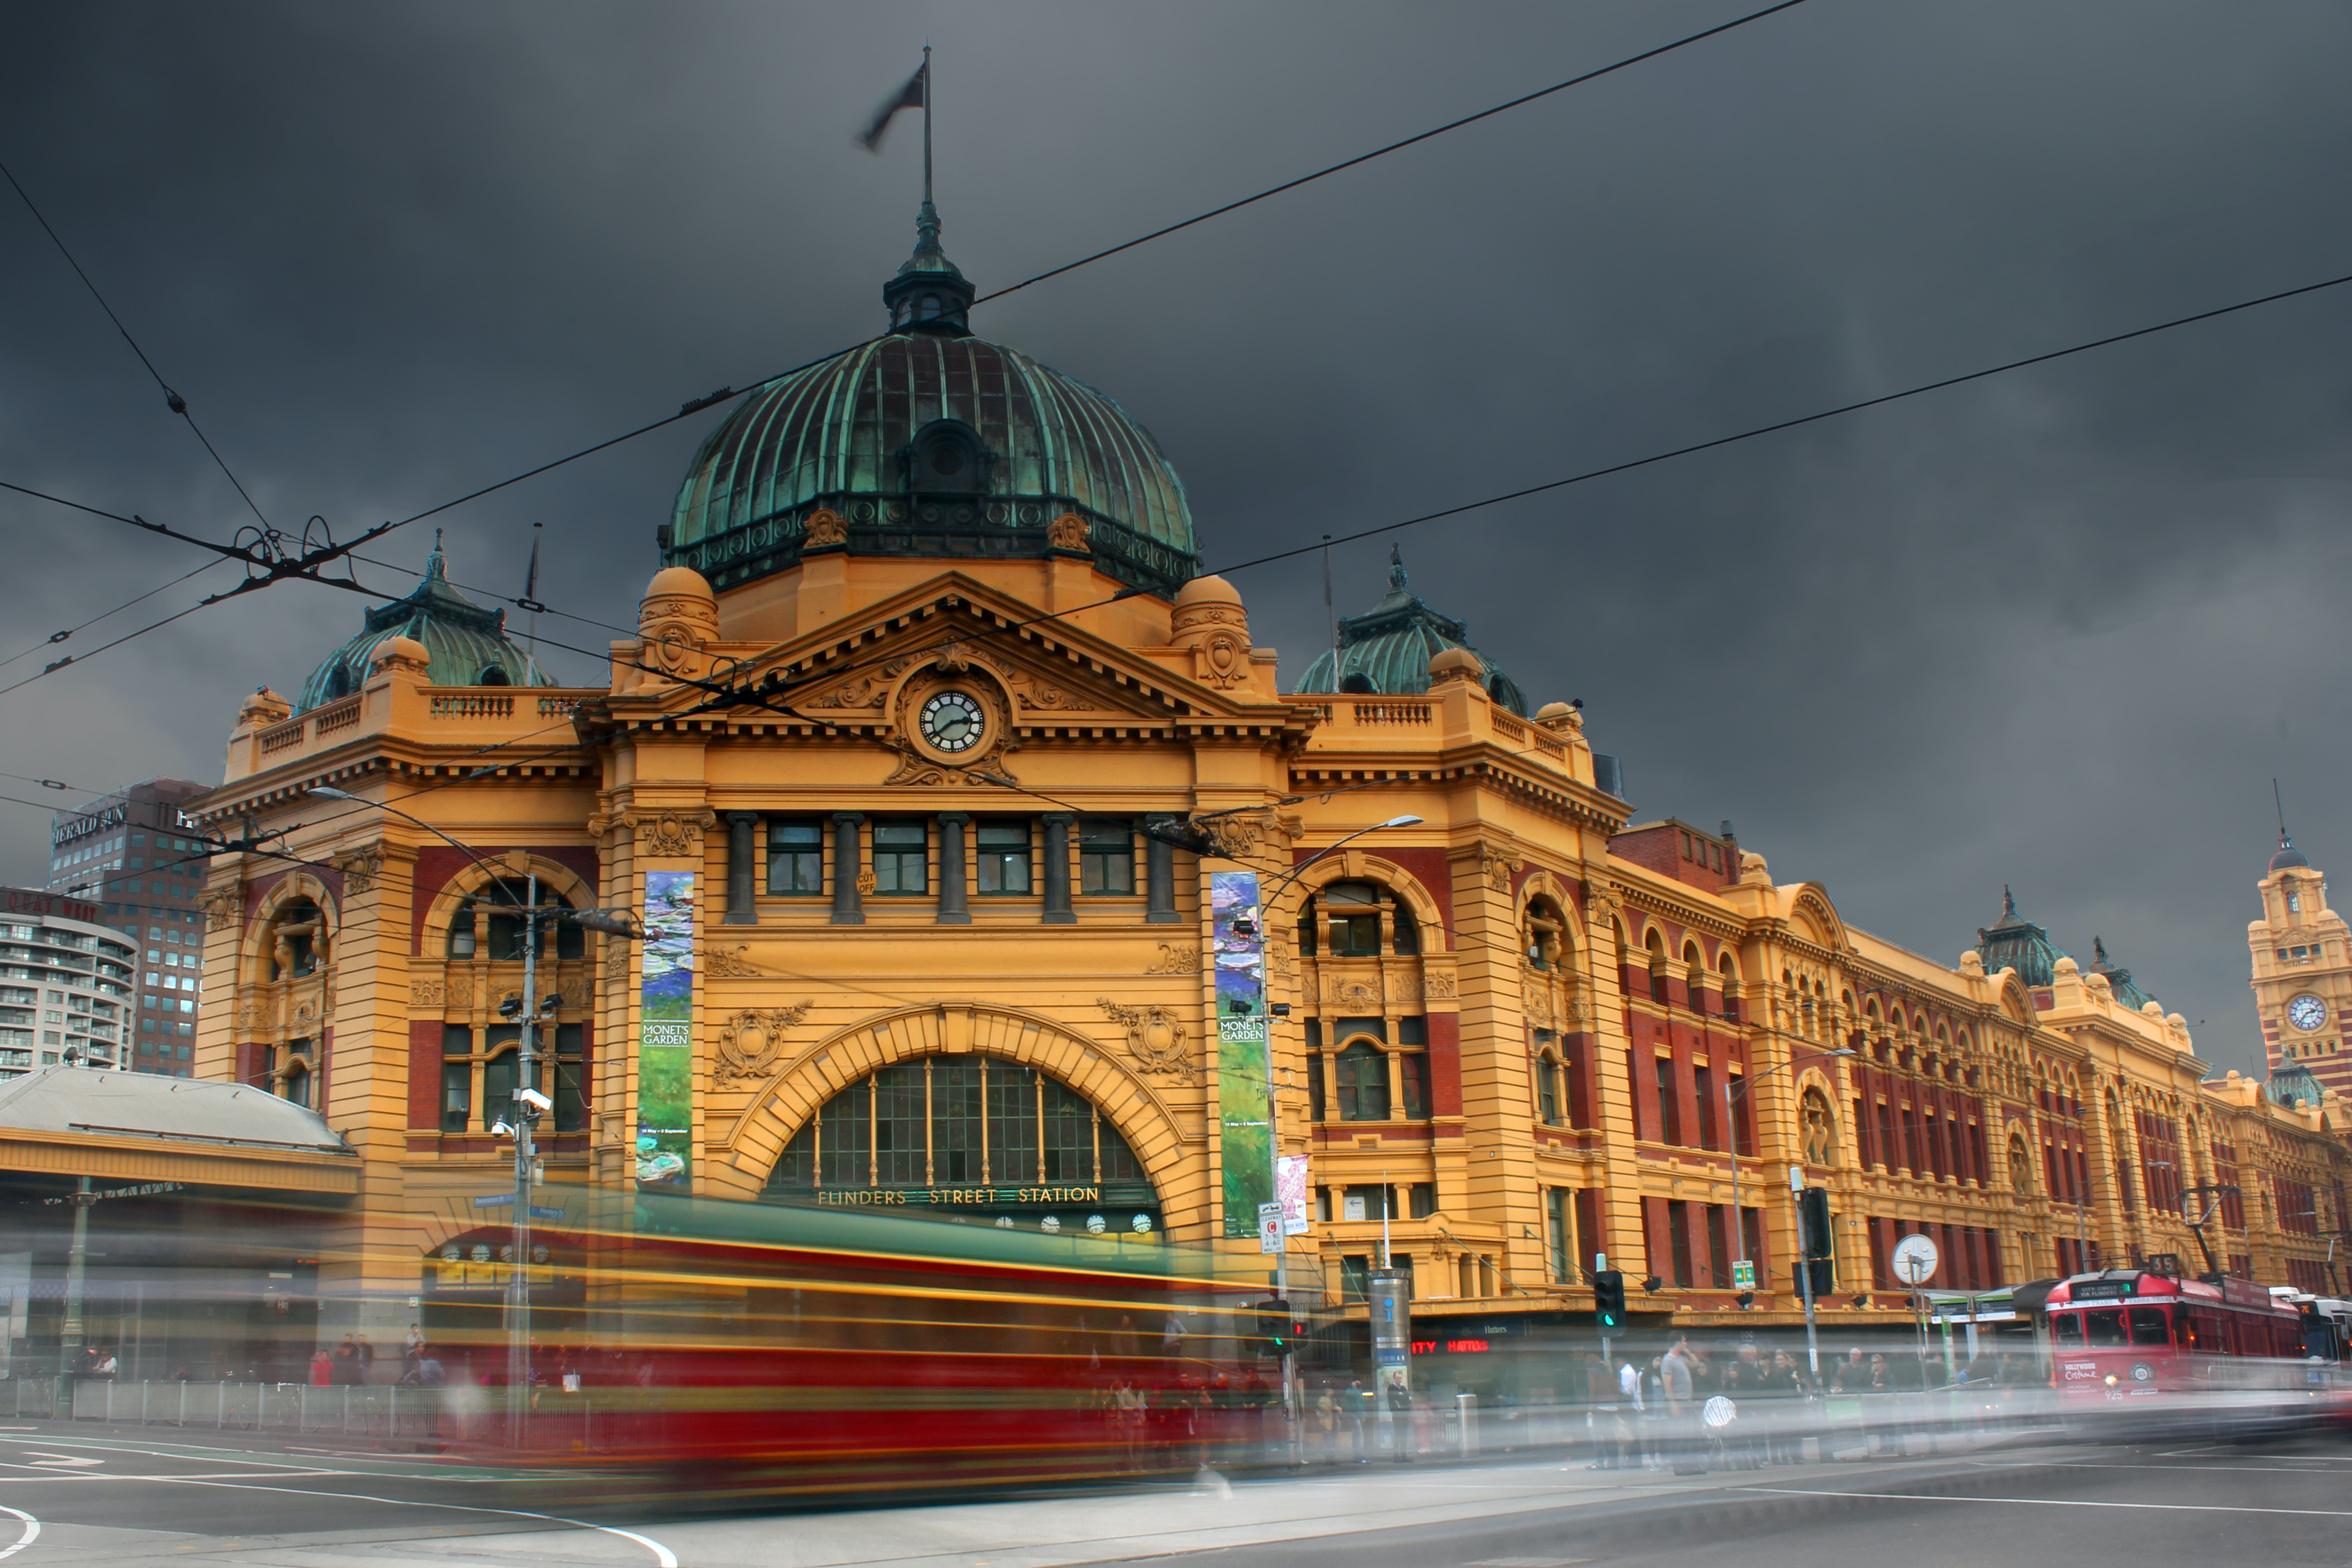 A blurred shot of traffic in motion on Flinders Street in Melbourne